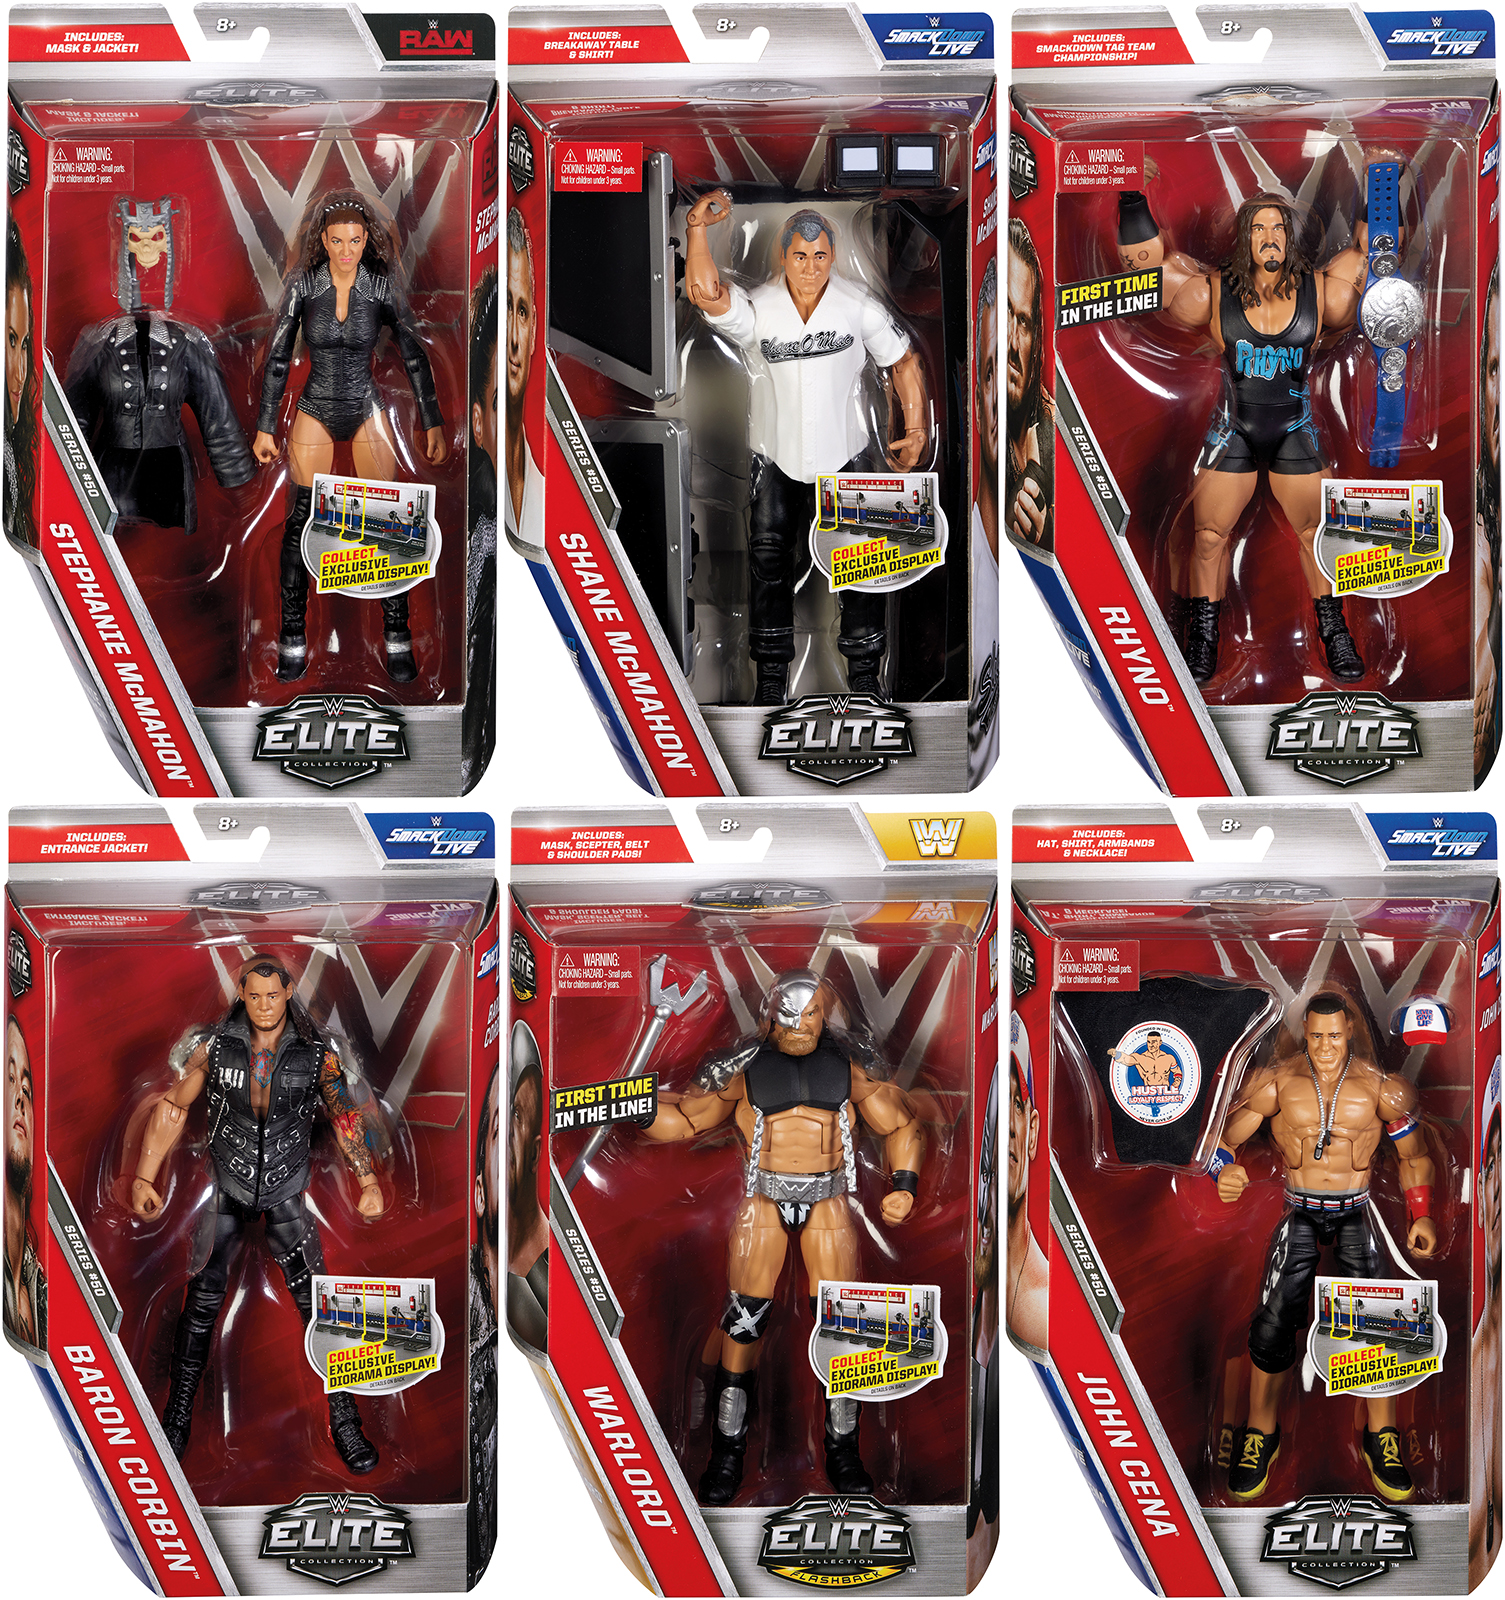 Wwe Elite 50 Complete Set Of 6 Toy Wrestling Action Figures